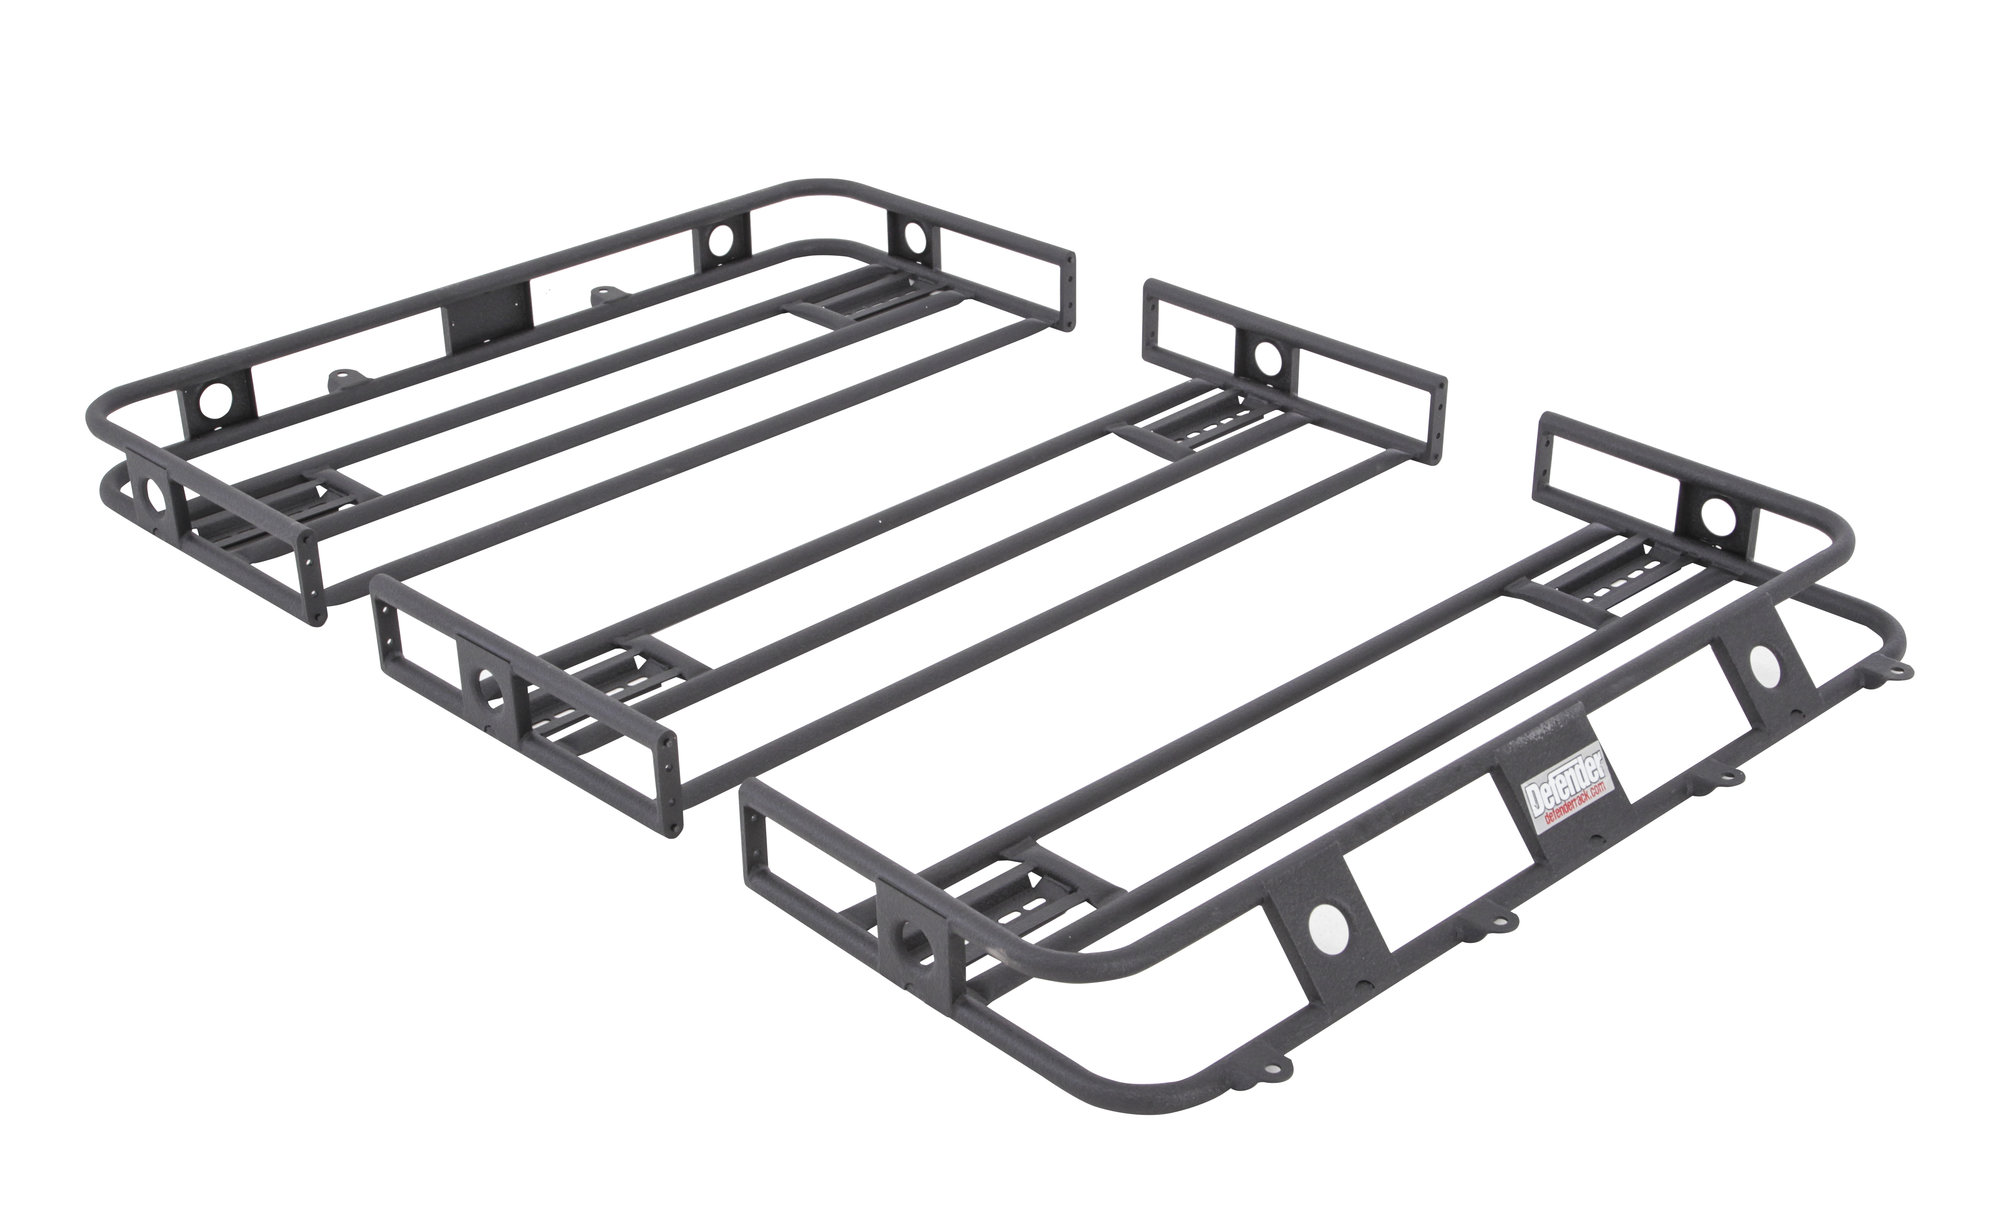 Smittybilt Defender Roof Rack for 84-01 Jeep Cherokee XJ